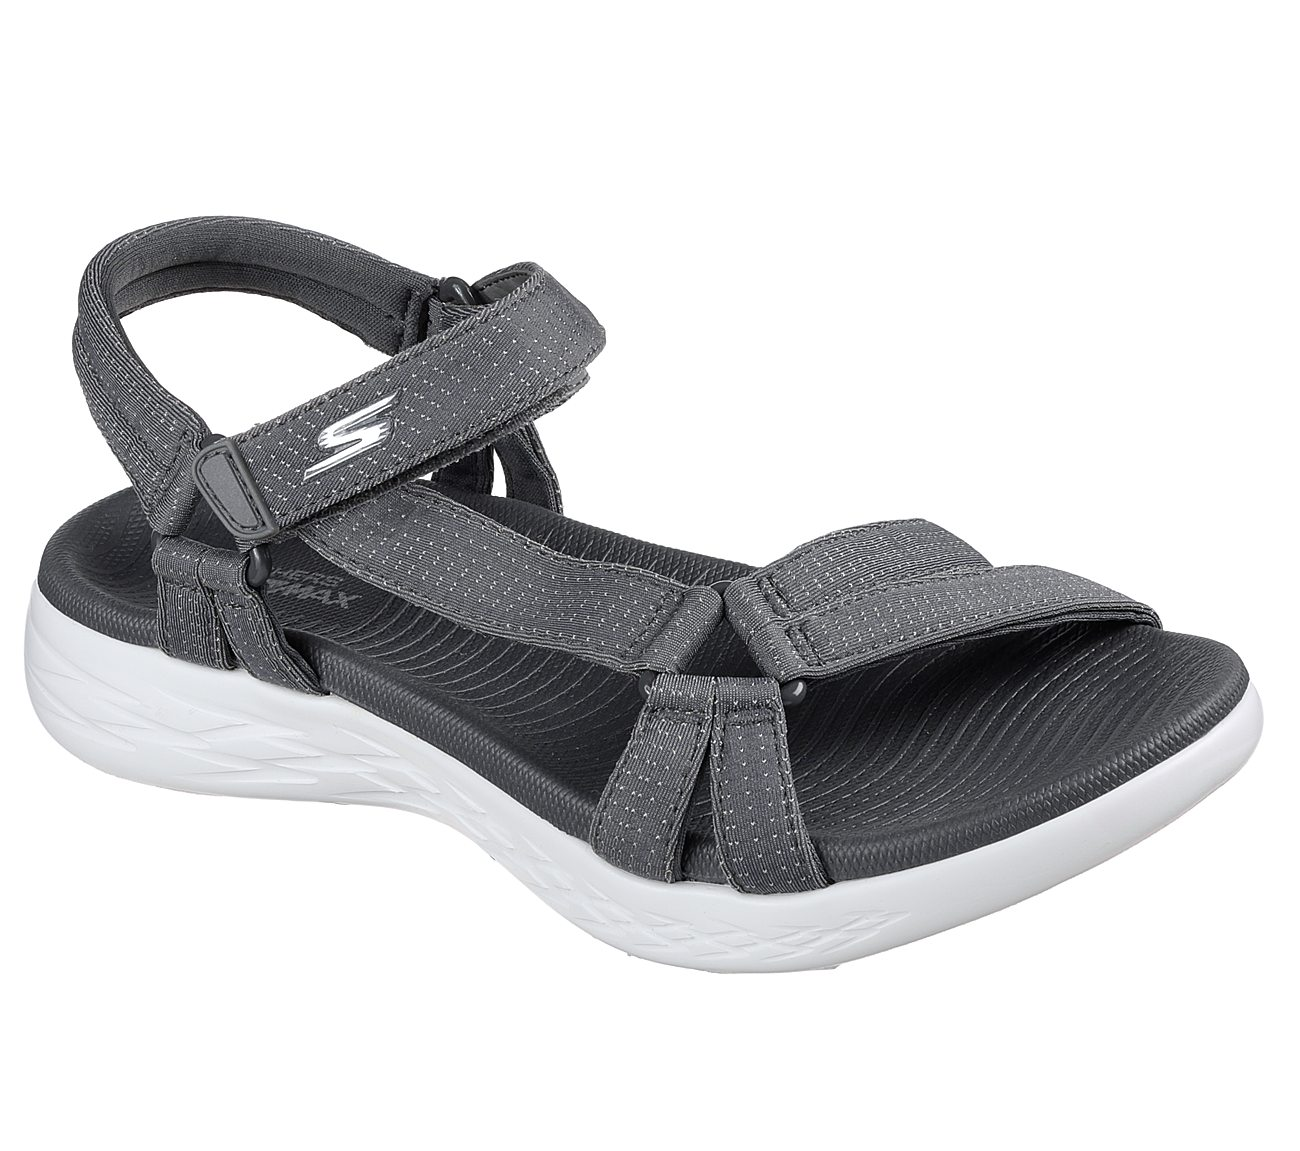 Skechers O T G Womens Sandals ON THE GO 600 BRILLIANCY